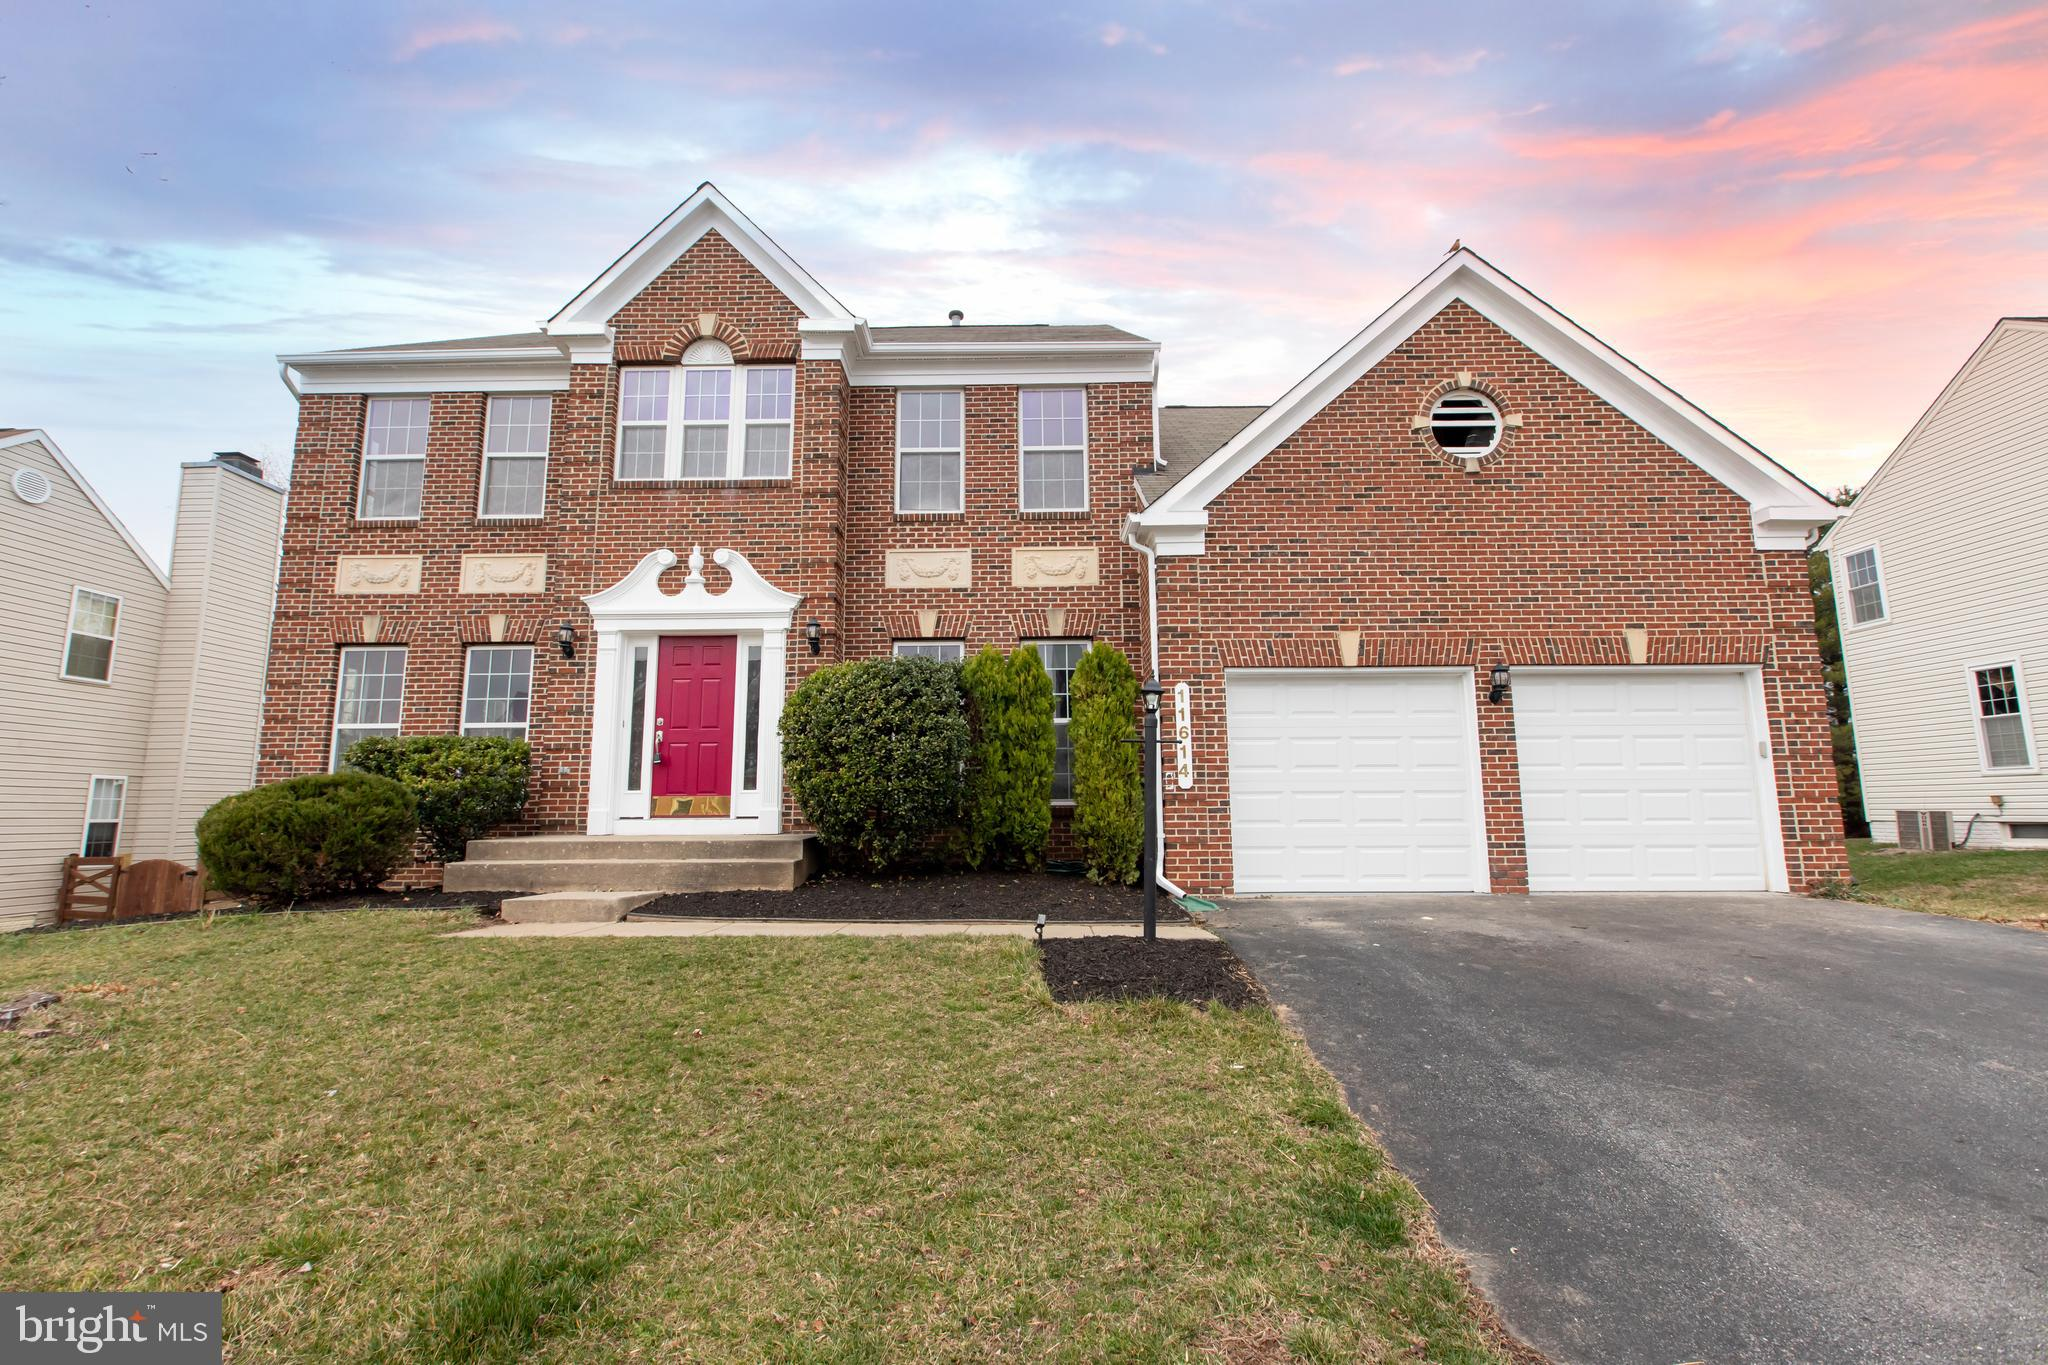 11614 SETTLERS CIRCLE, GERMANTOWN, MD 20876